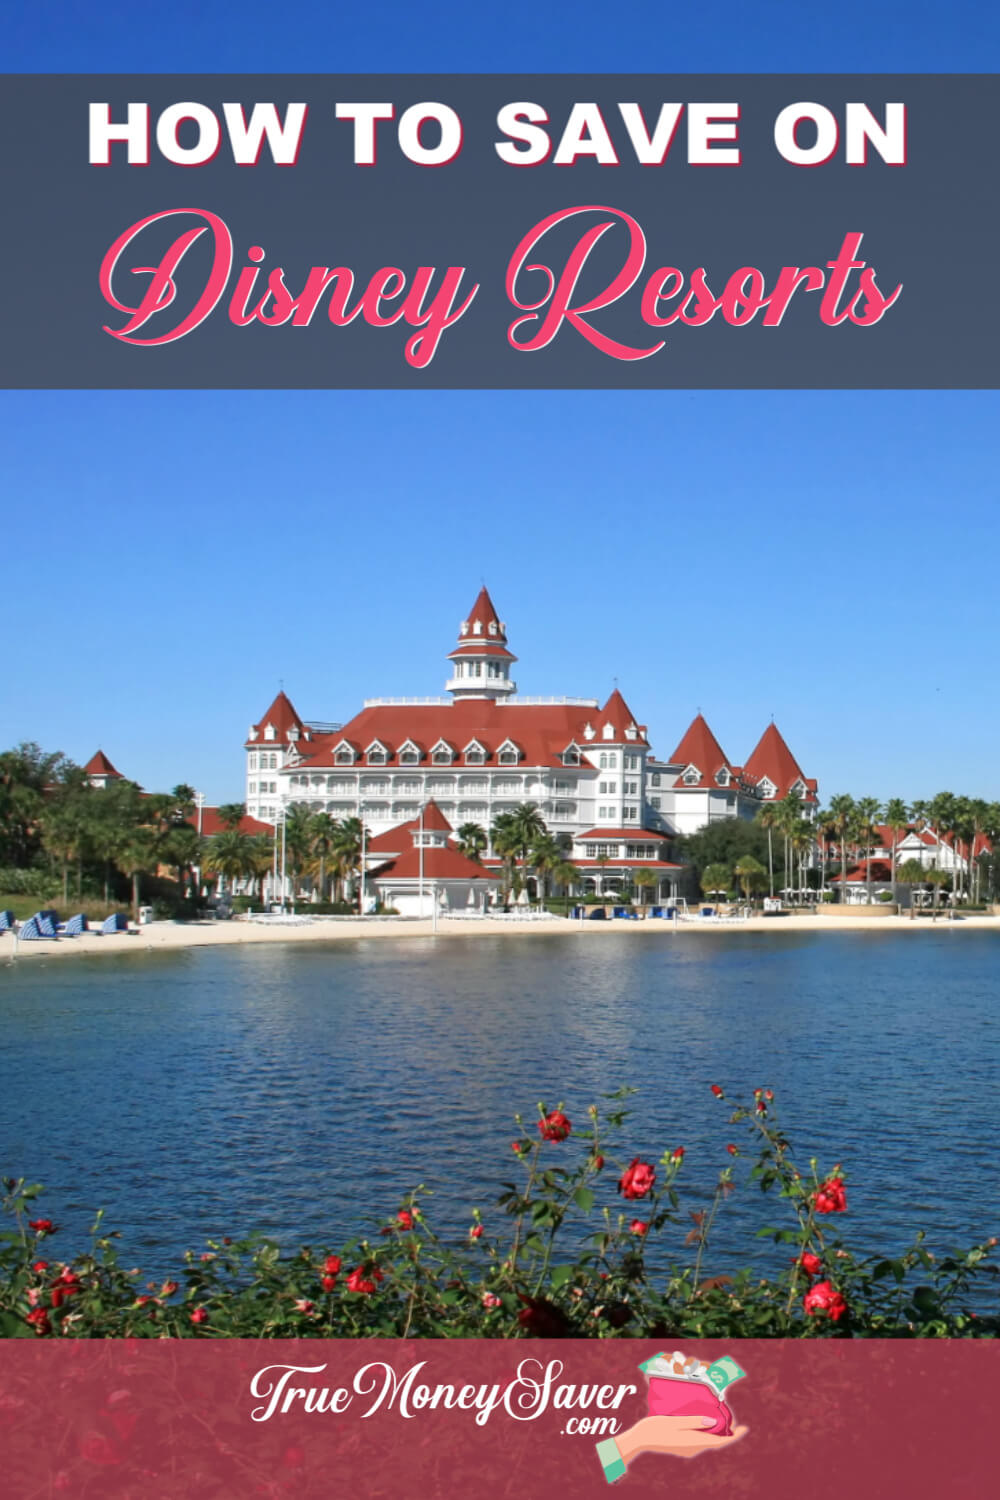 Want to stay at a Disney resort but think you can\'t afford it? Think again! There are some fabulous ways to save and stay on Disney property! #disney #truemoneysaver #savingmoney #disneyresort #florida #familyvacay #vacay #resort#disneycoronadosprings #disneyportorleansriverside #disneyartofanimationresort #disneygrandfloridian